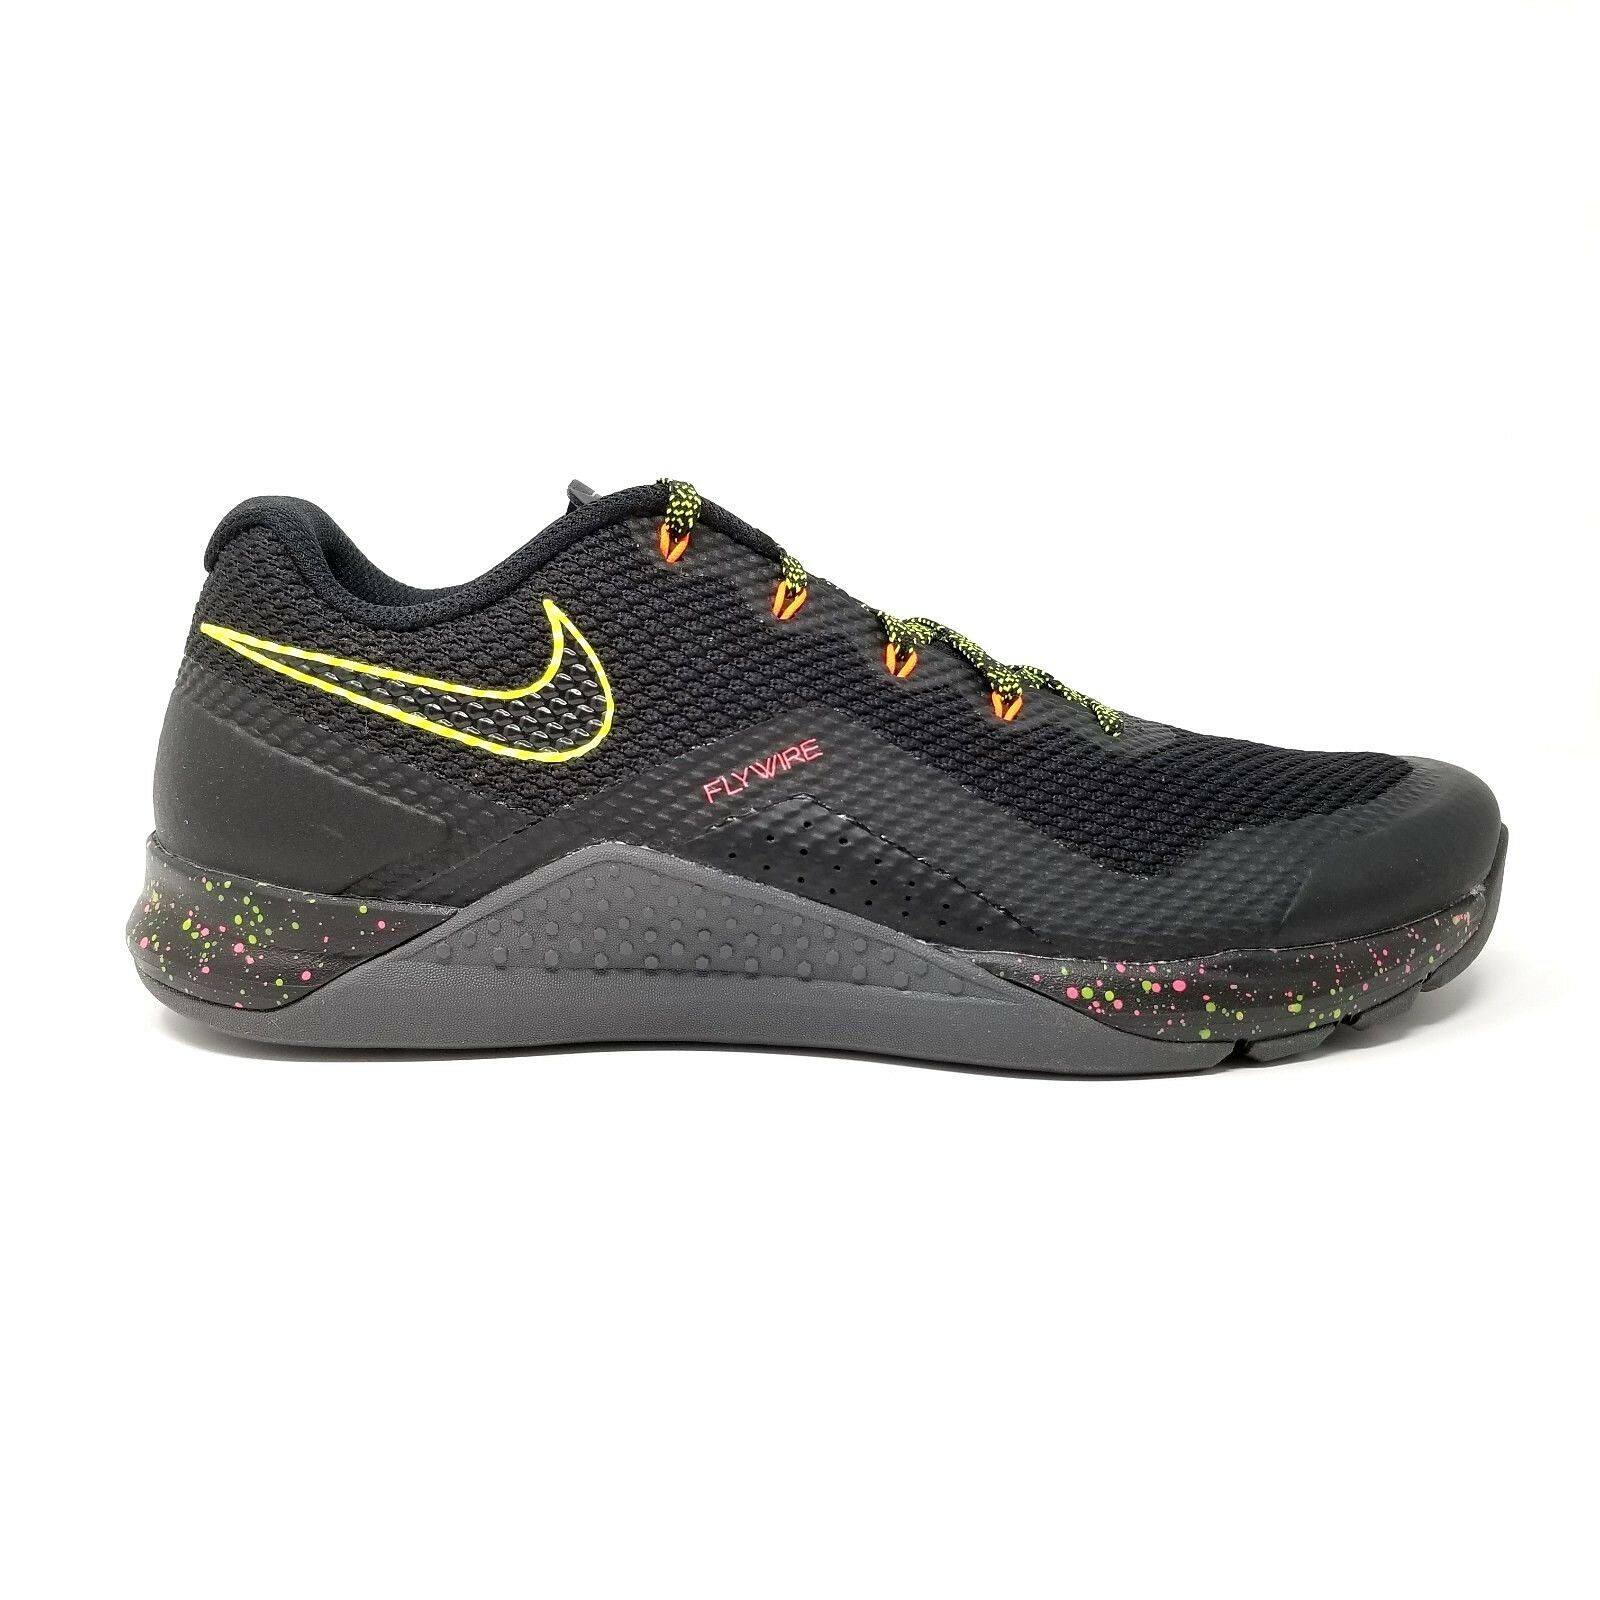 Nike Metcon Repper DSX 898048-007 Black/Volt/Crimson Mens Training Shoes Sz 11.5